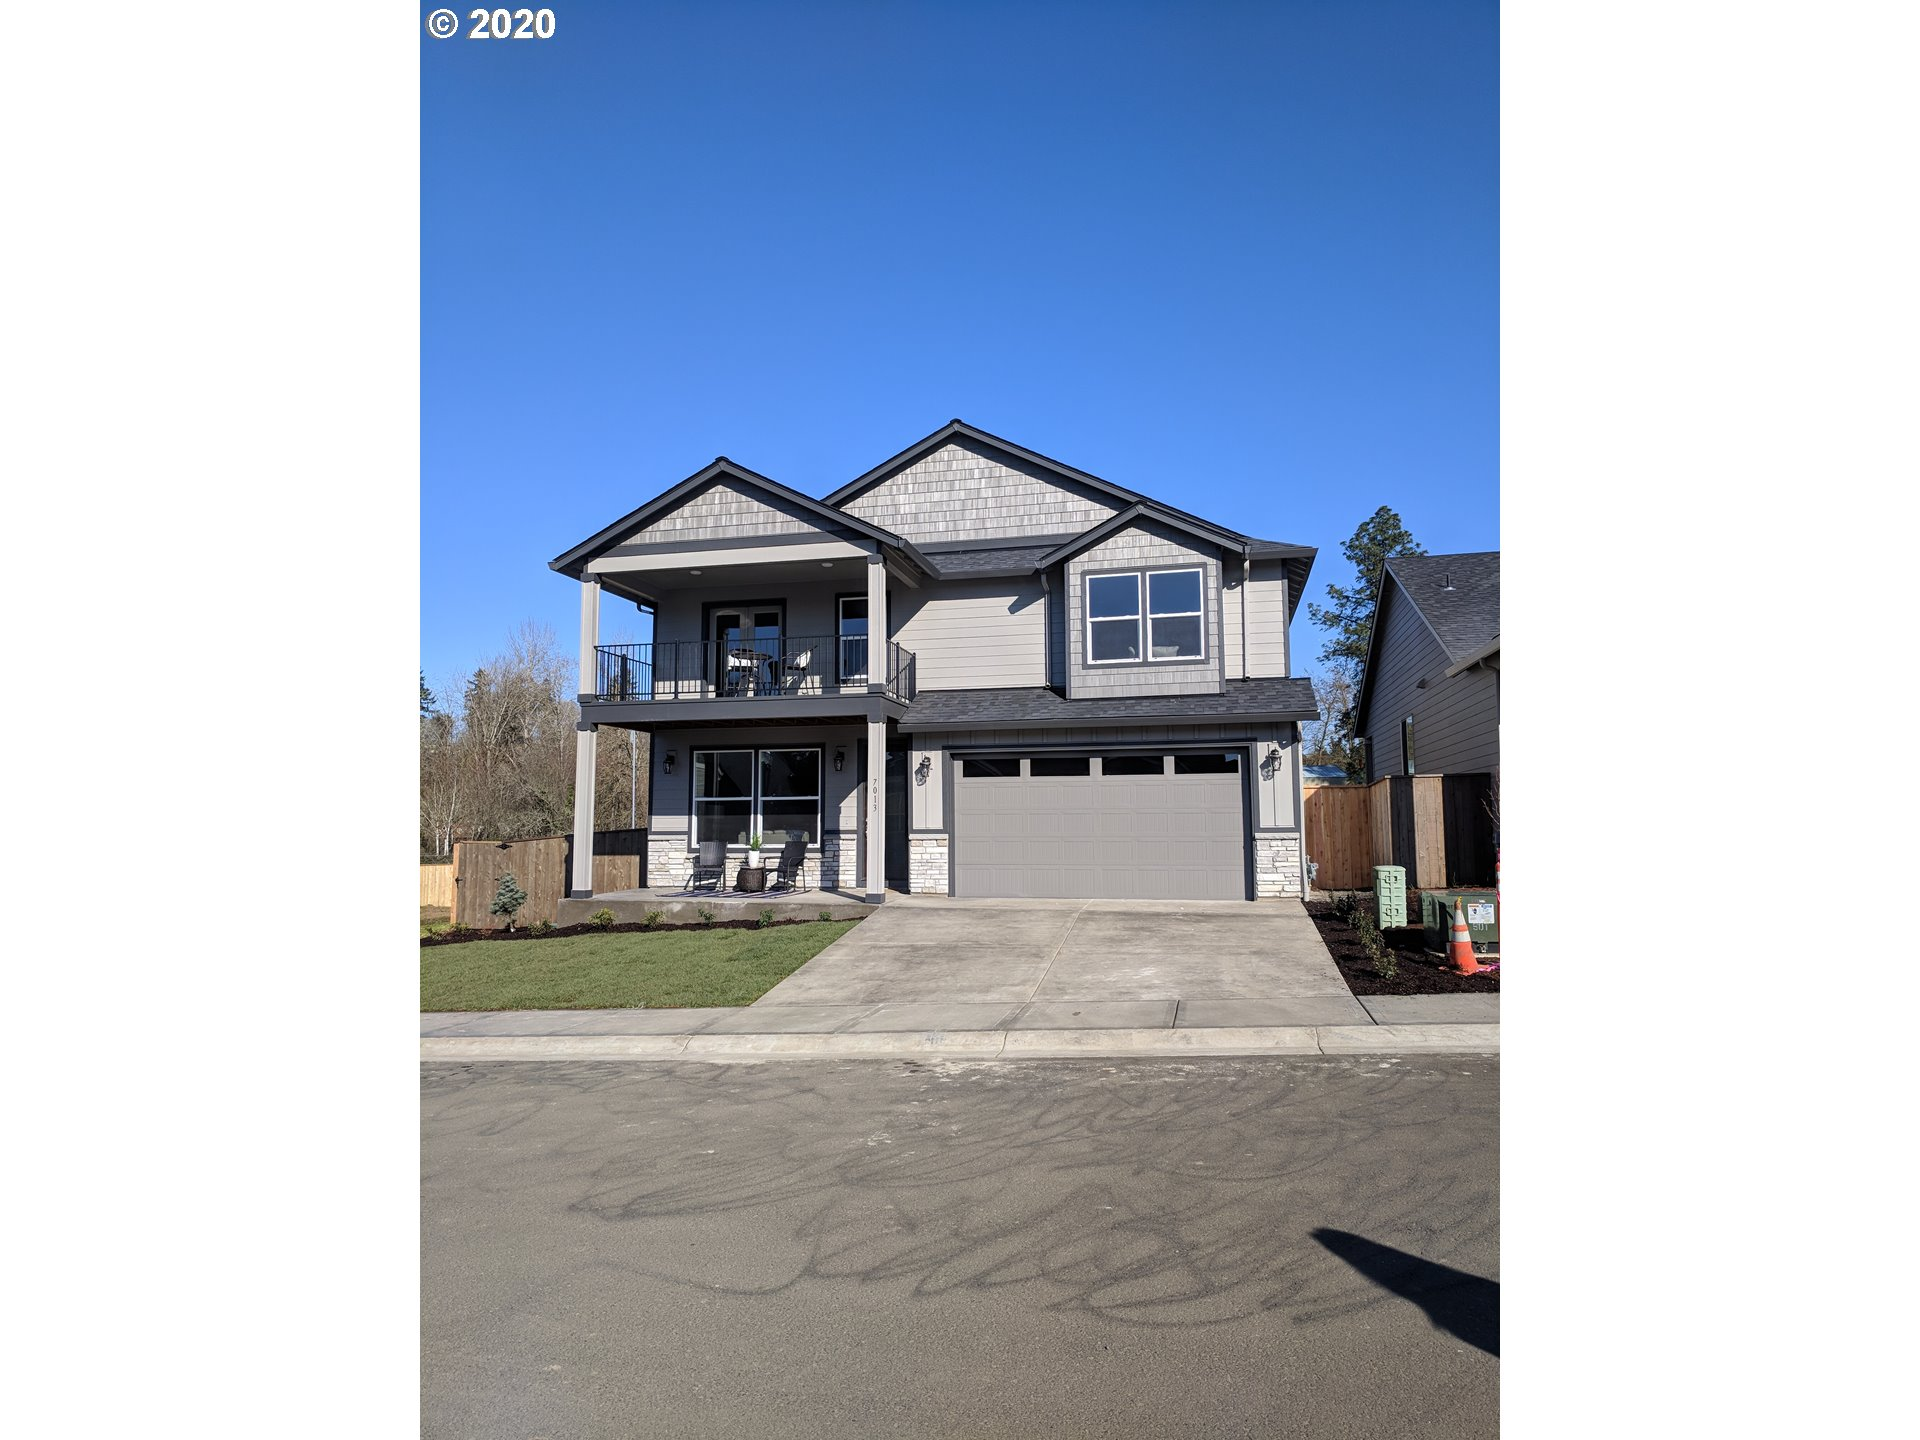 7013 NW 21st Ave, Vancouver, WA 98665